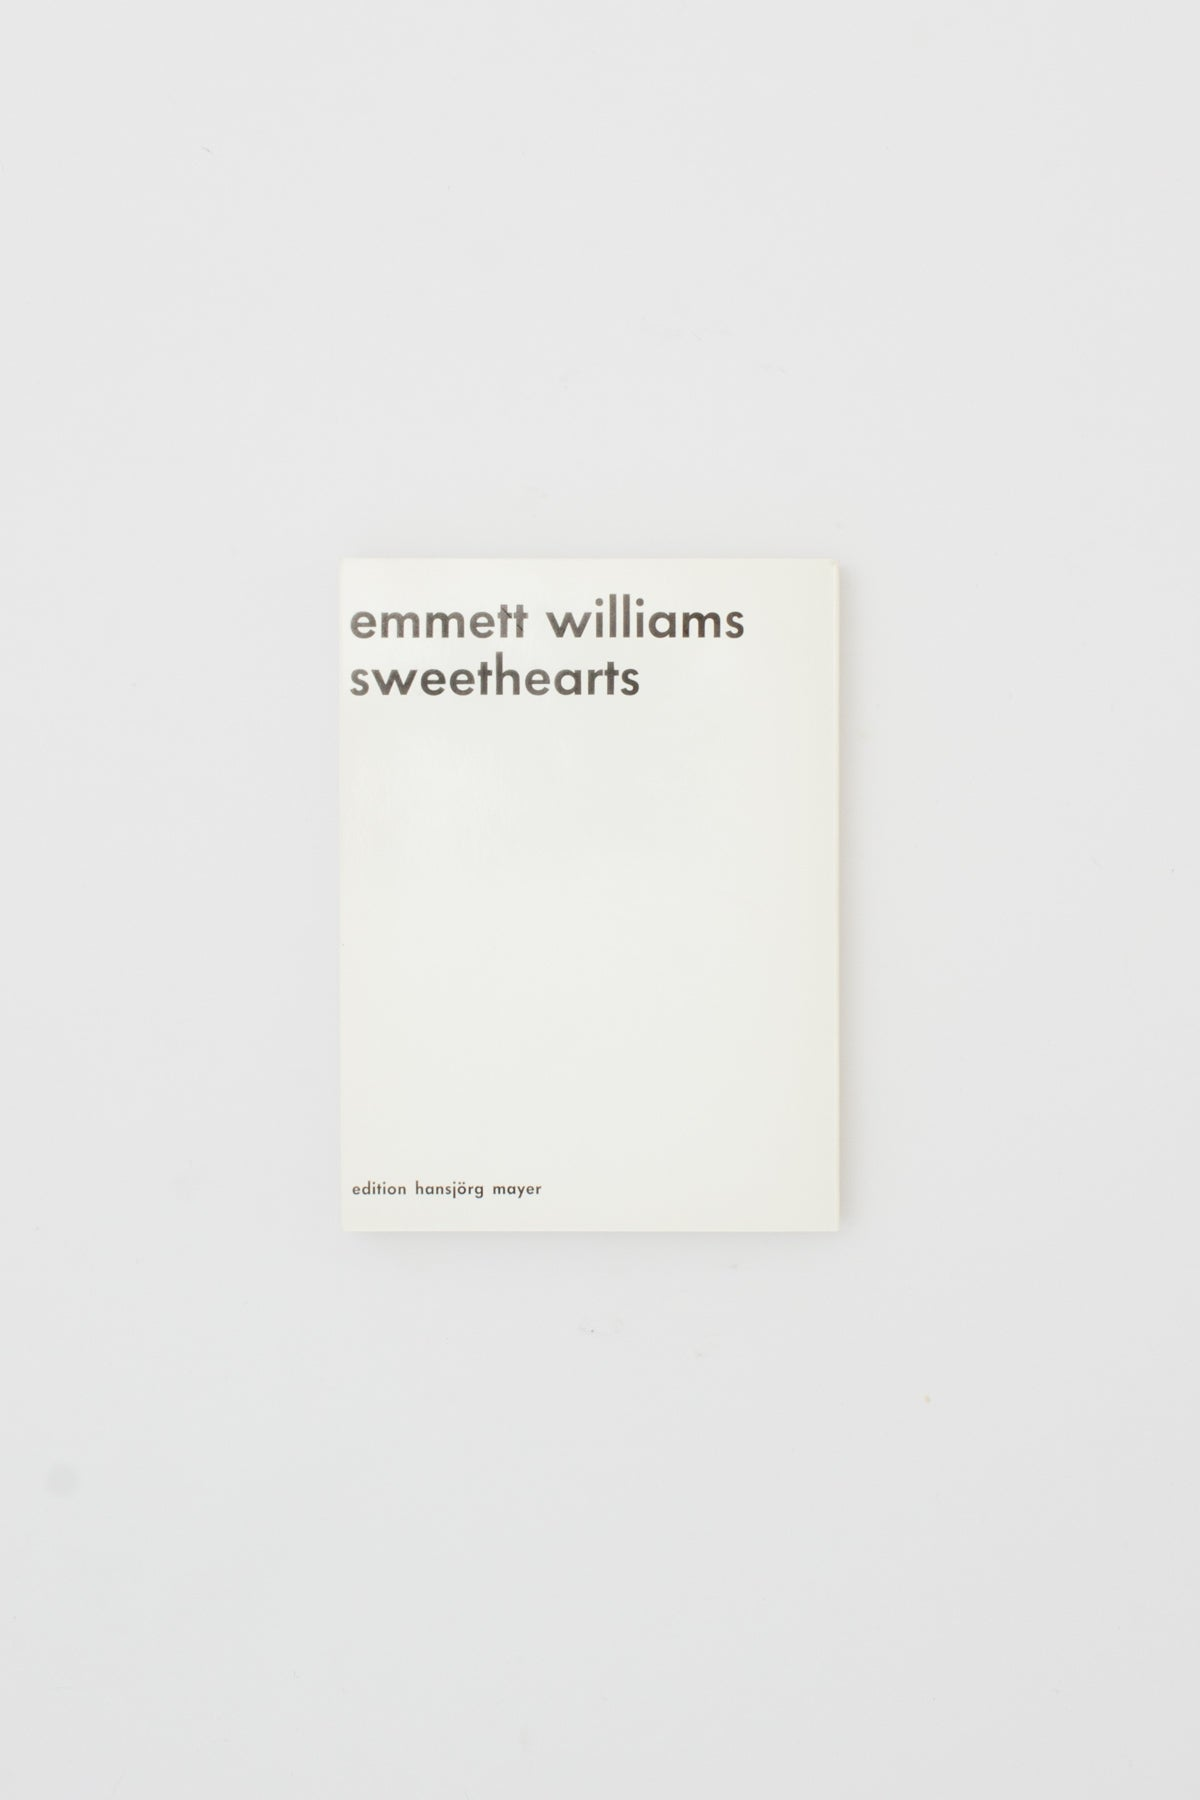 Sweethearts - Emmett Williams